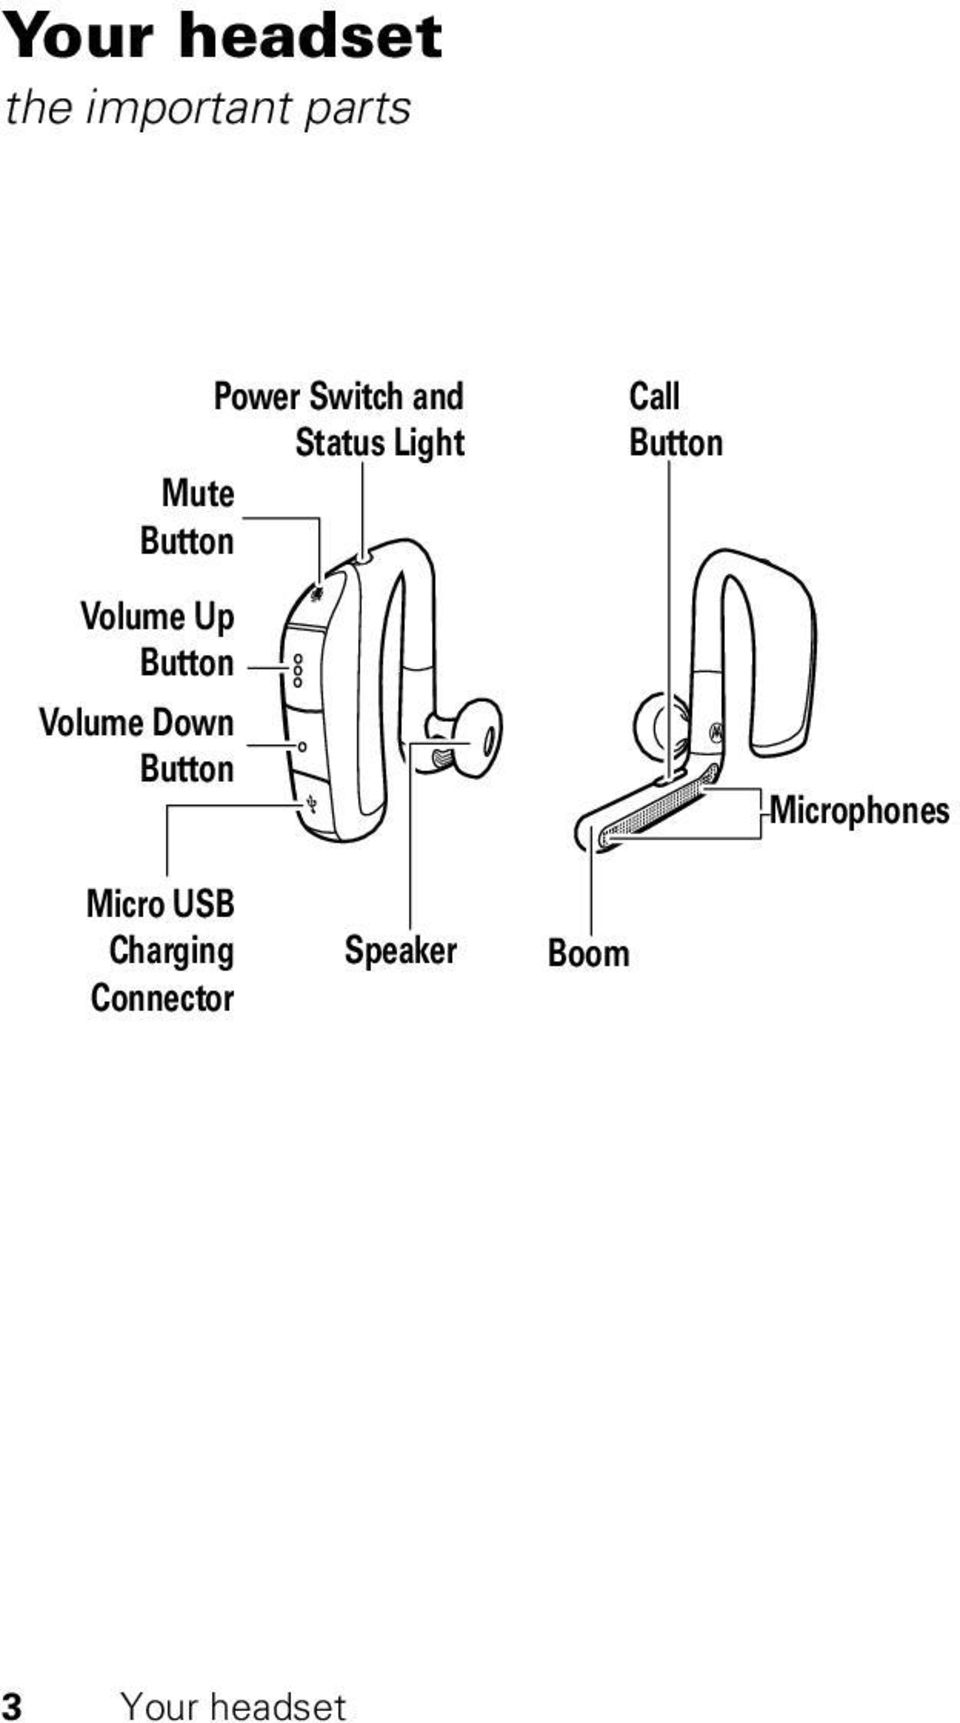 Volume Down Button Call Button Microphones